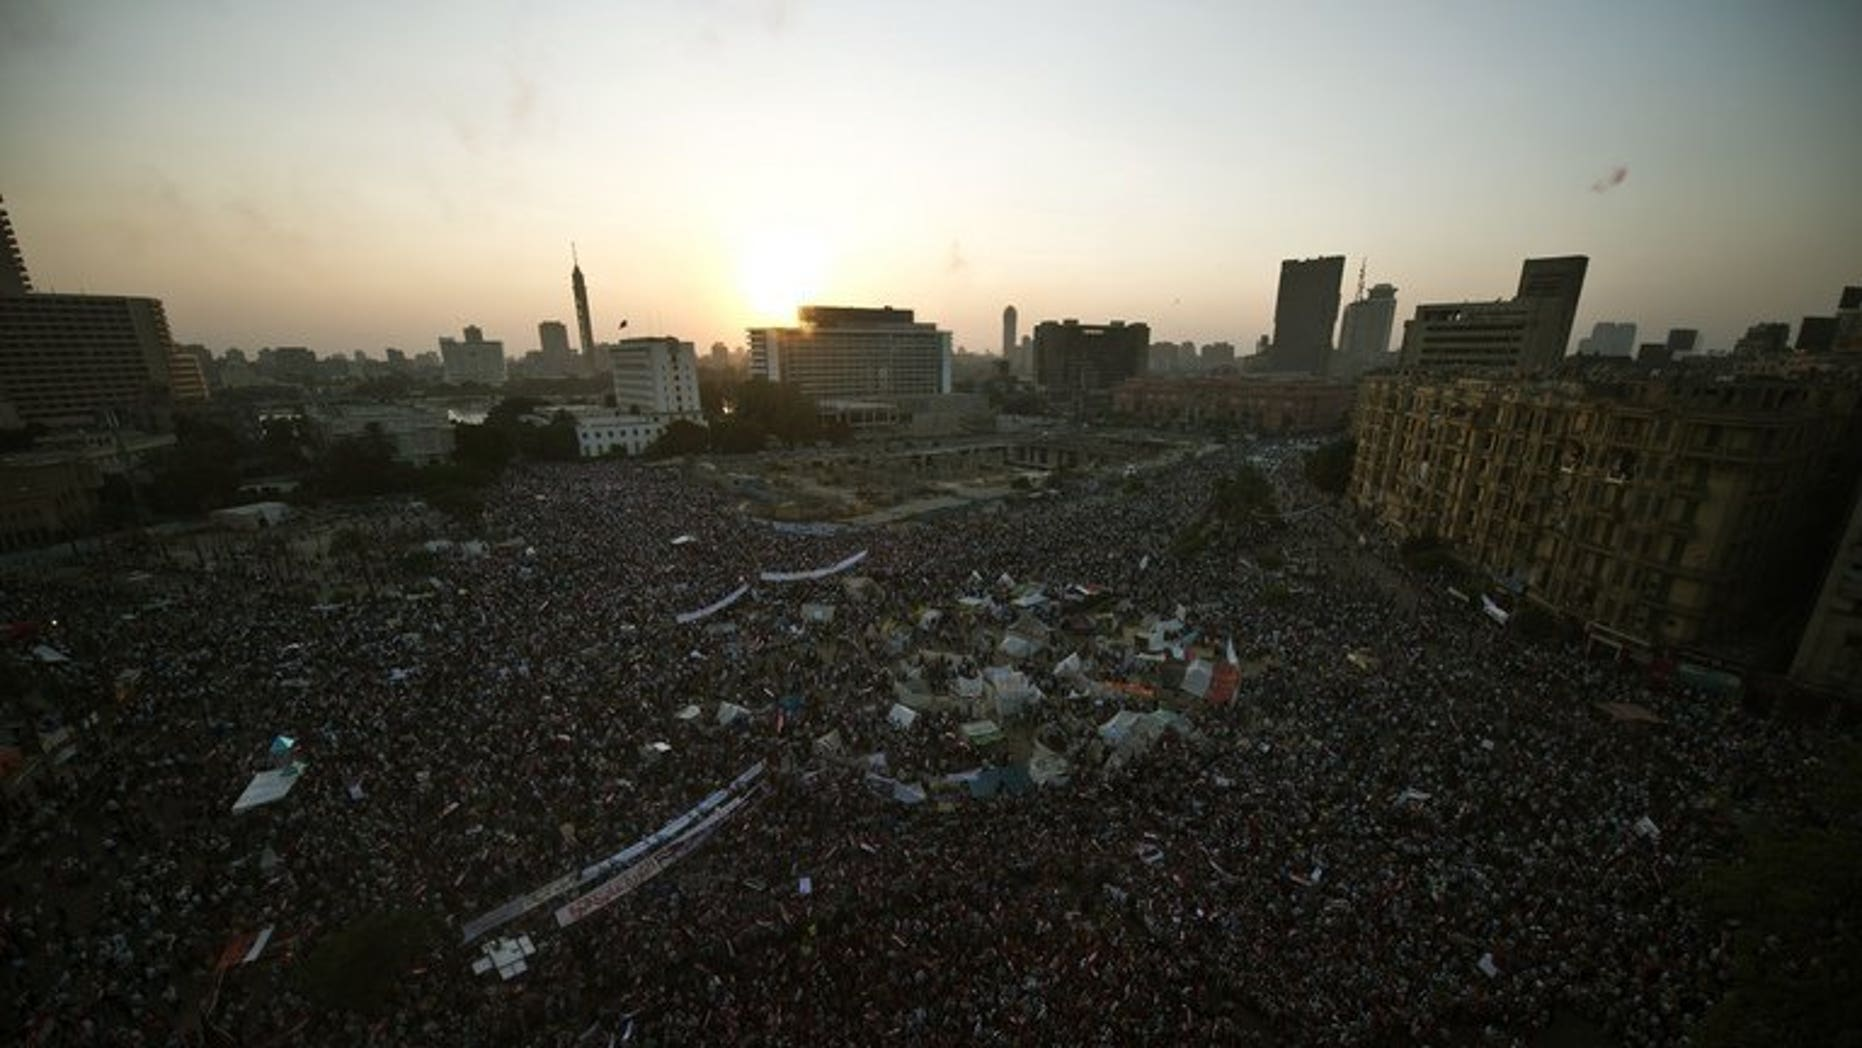 Thousands of Egyptians rally on July 7, 2013 in Cairo's Tahrir Square. Saudi Arabia said on Tuesday that it would give Egypt $5 billion (3.9 billion euro) in assistance for its economy, six days after the army toppled Islamist president Mohamed Morsi.